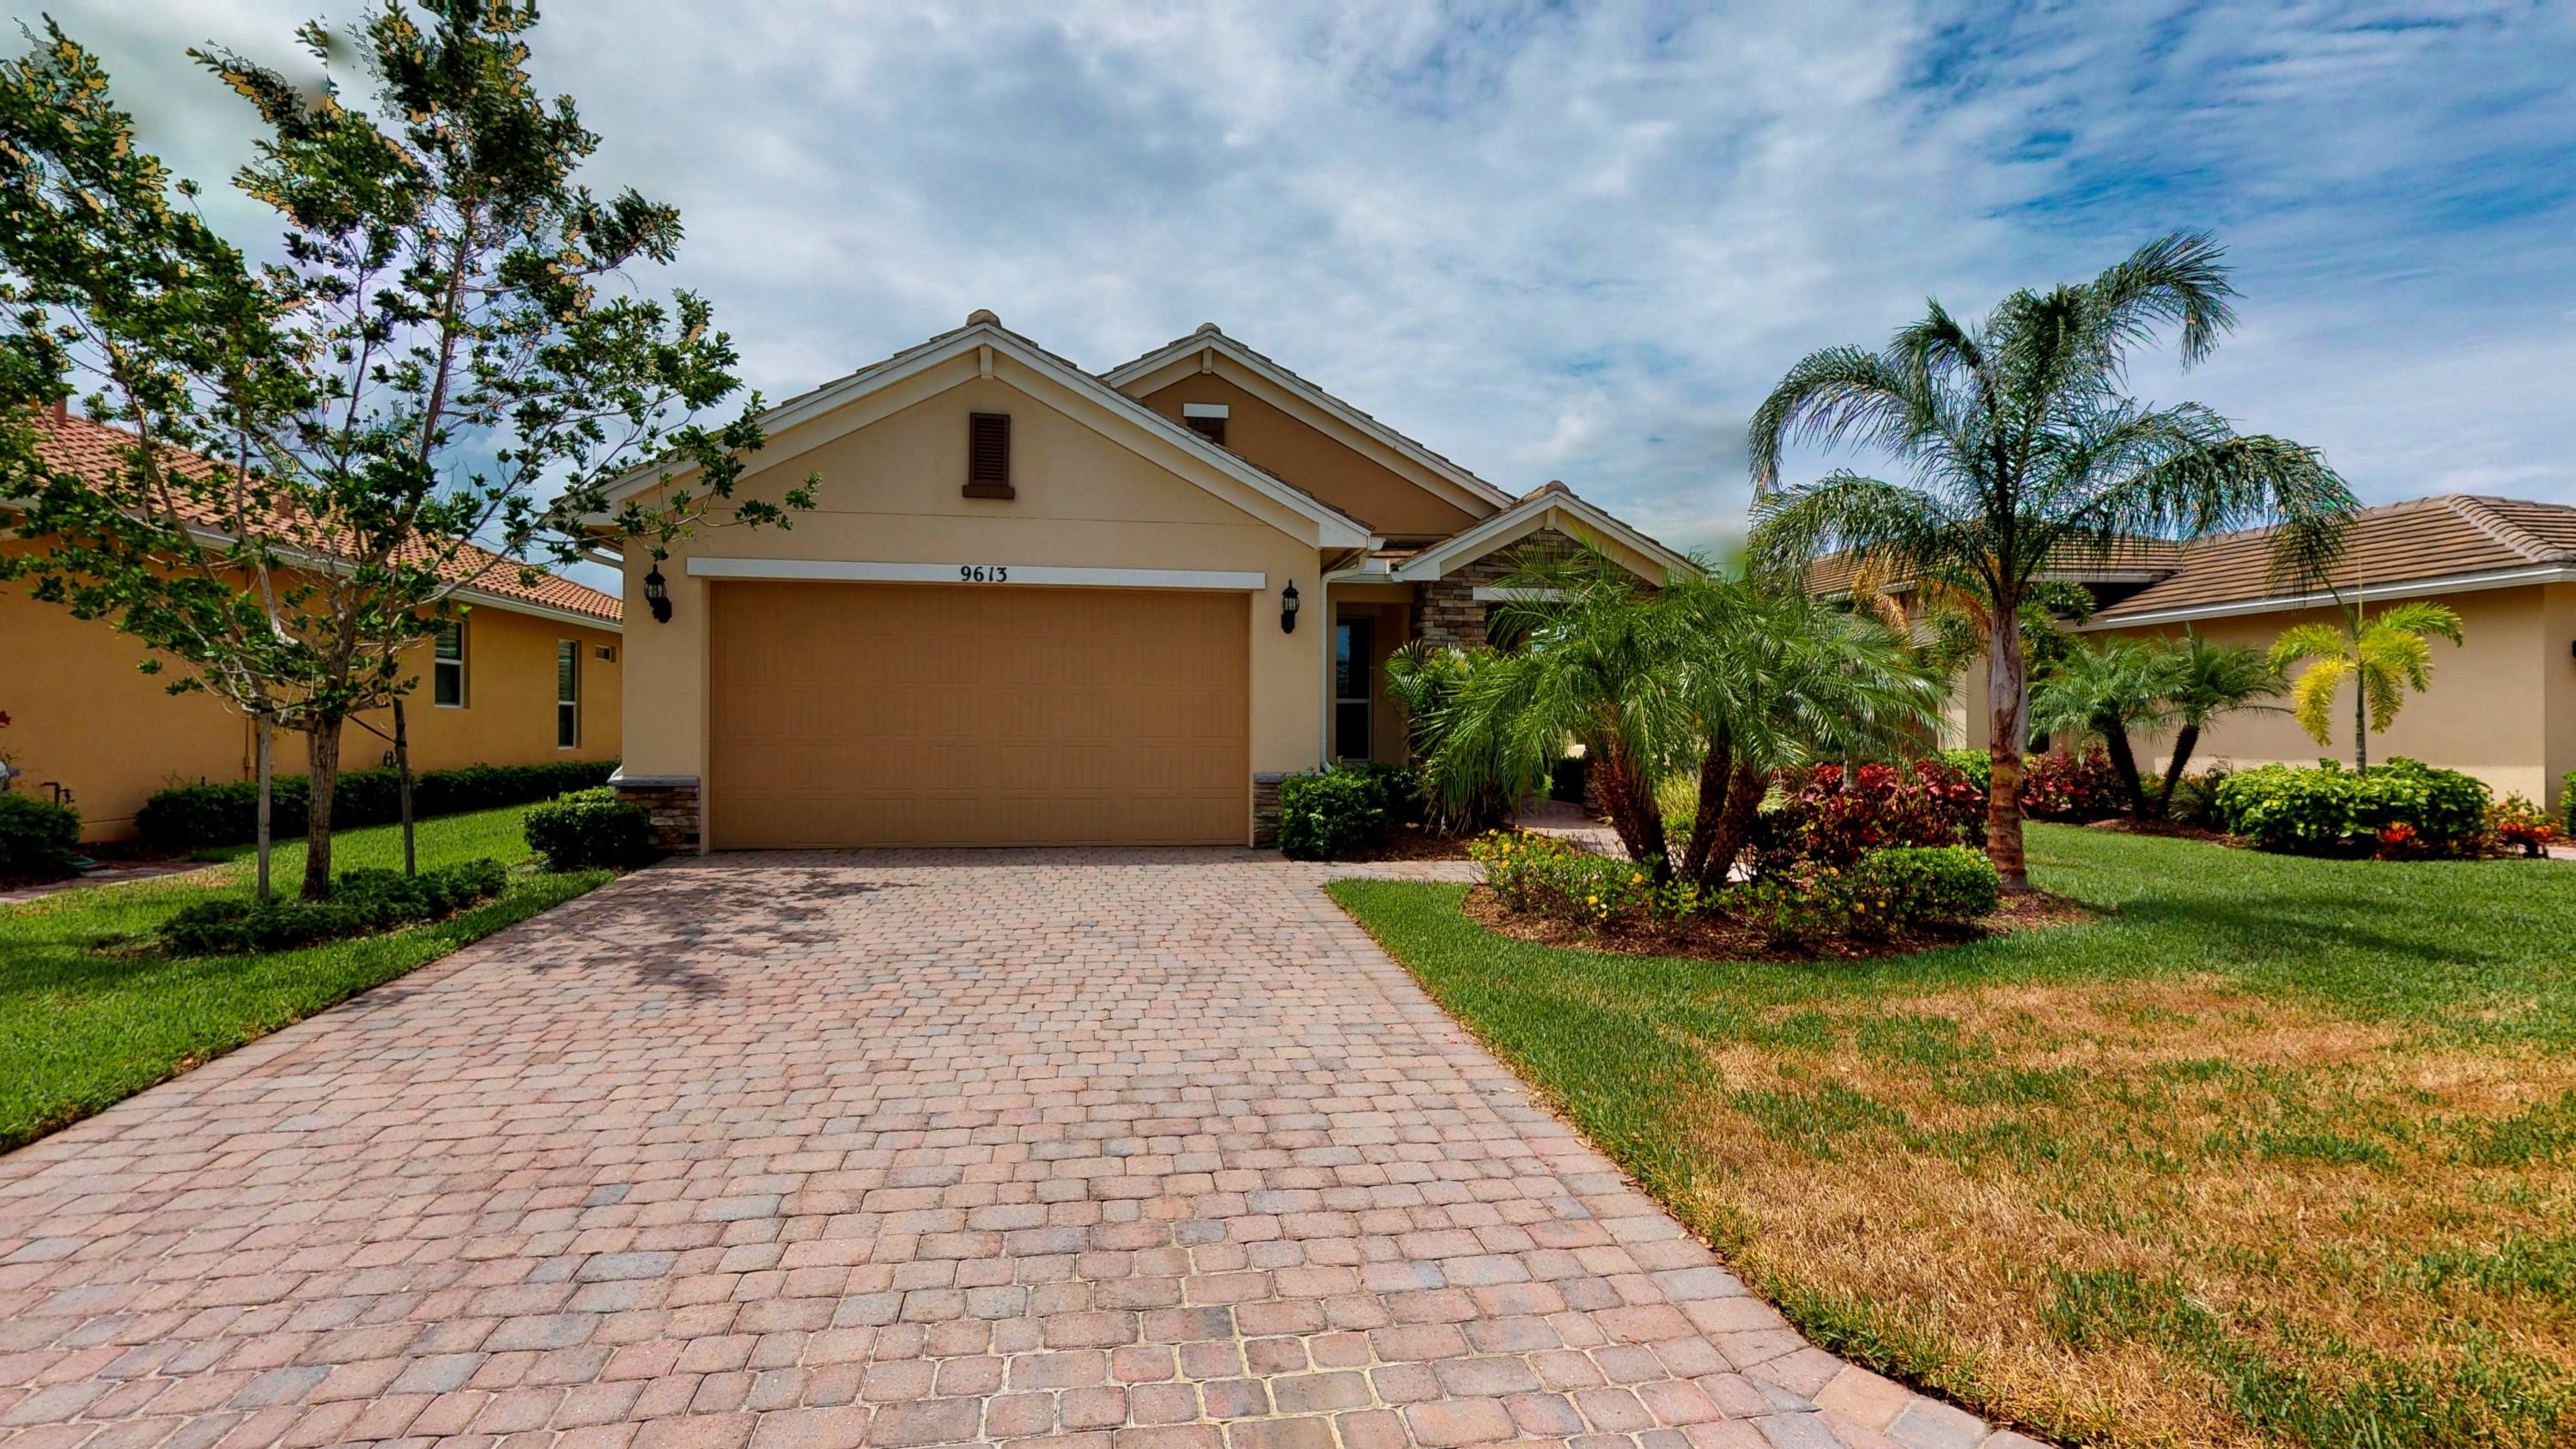 Photo of home for sale at 9613 Royal Poinciana Drive SW, Port Saint Lucie FL